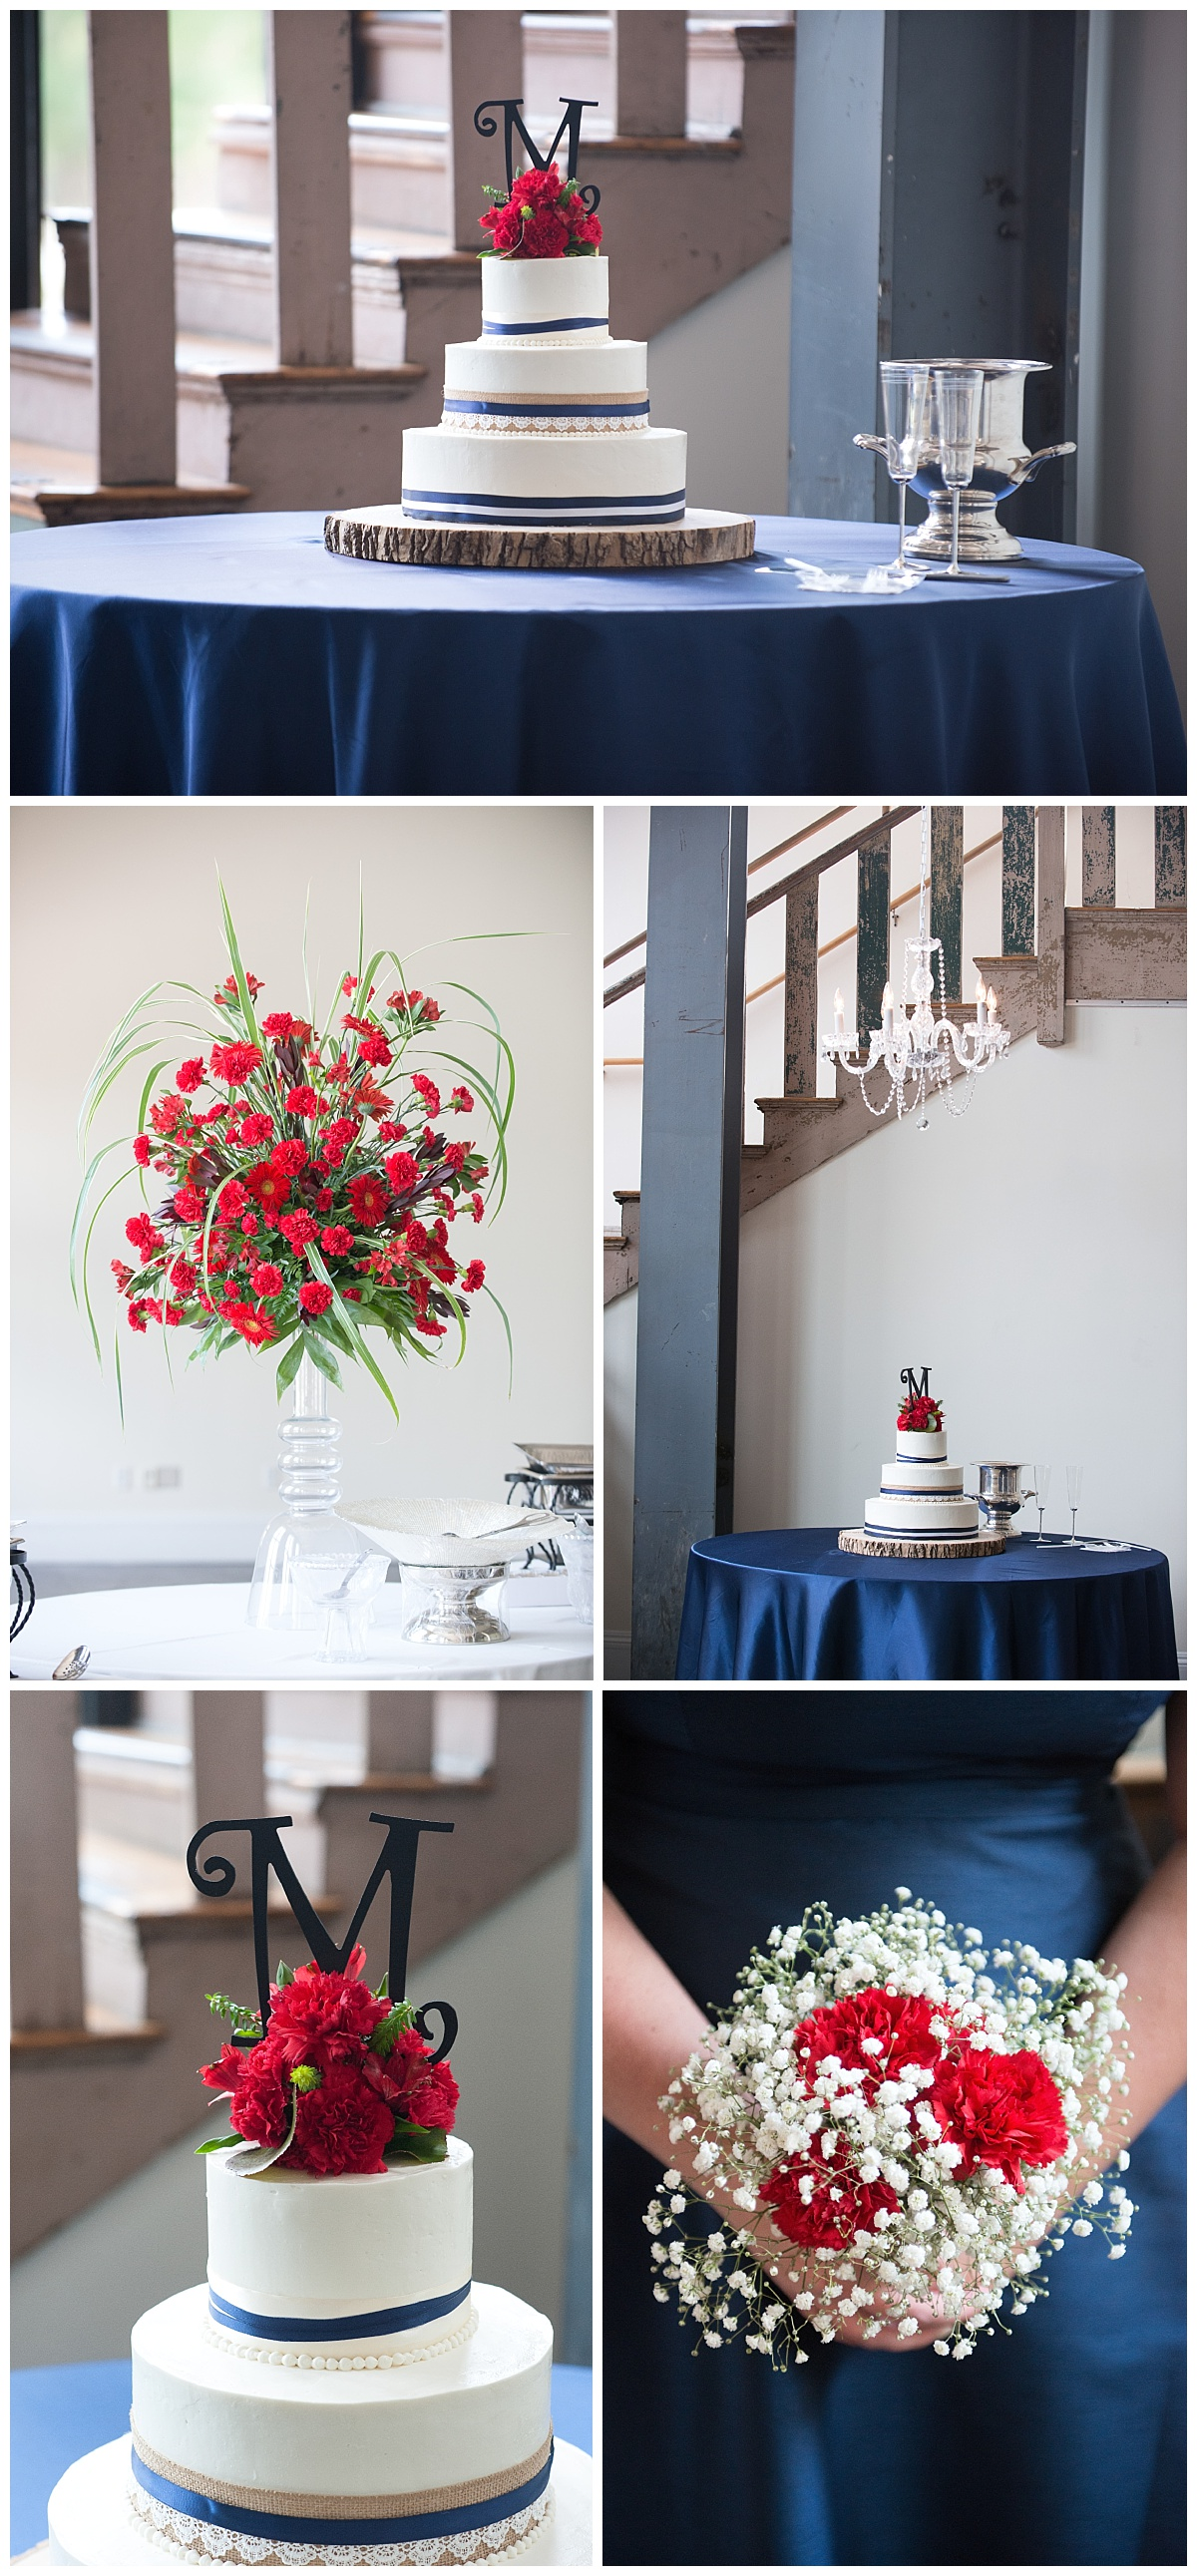 701 whaley cakes and blue and red color scheme